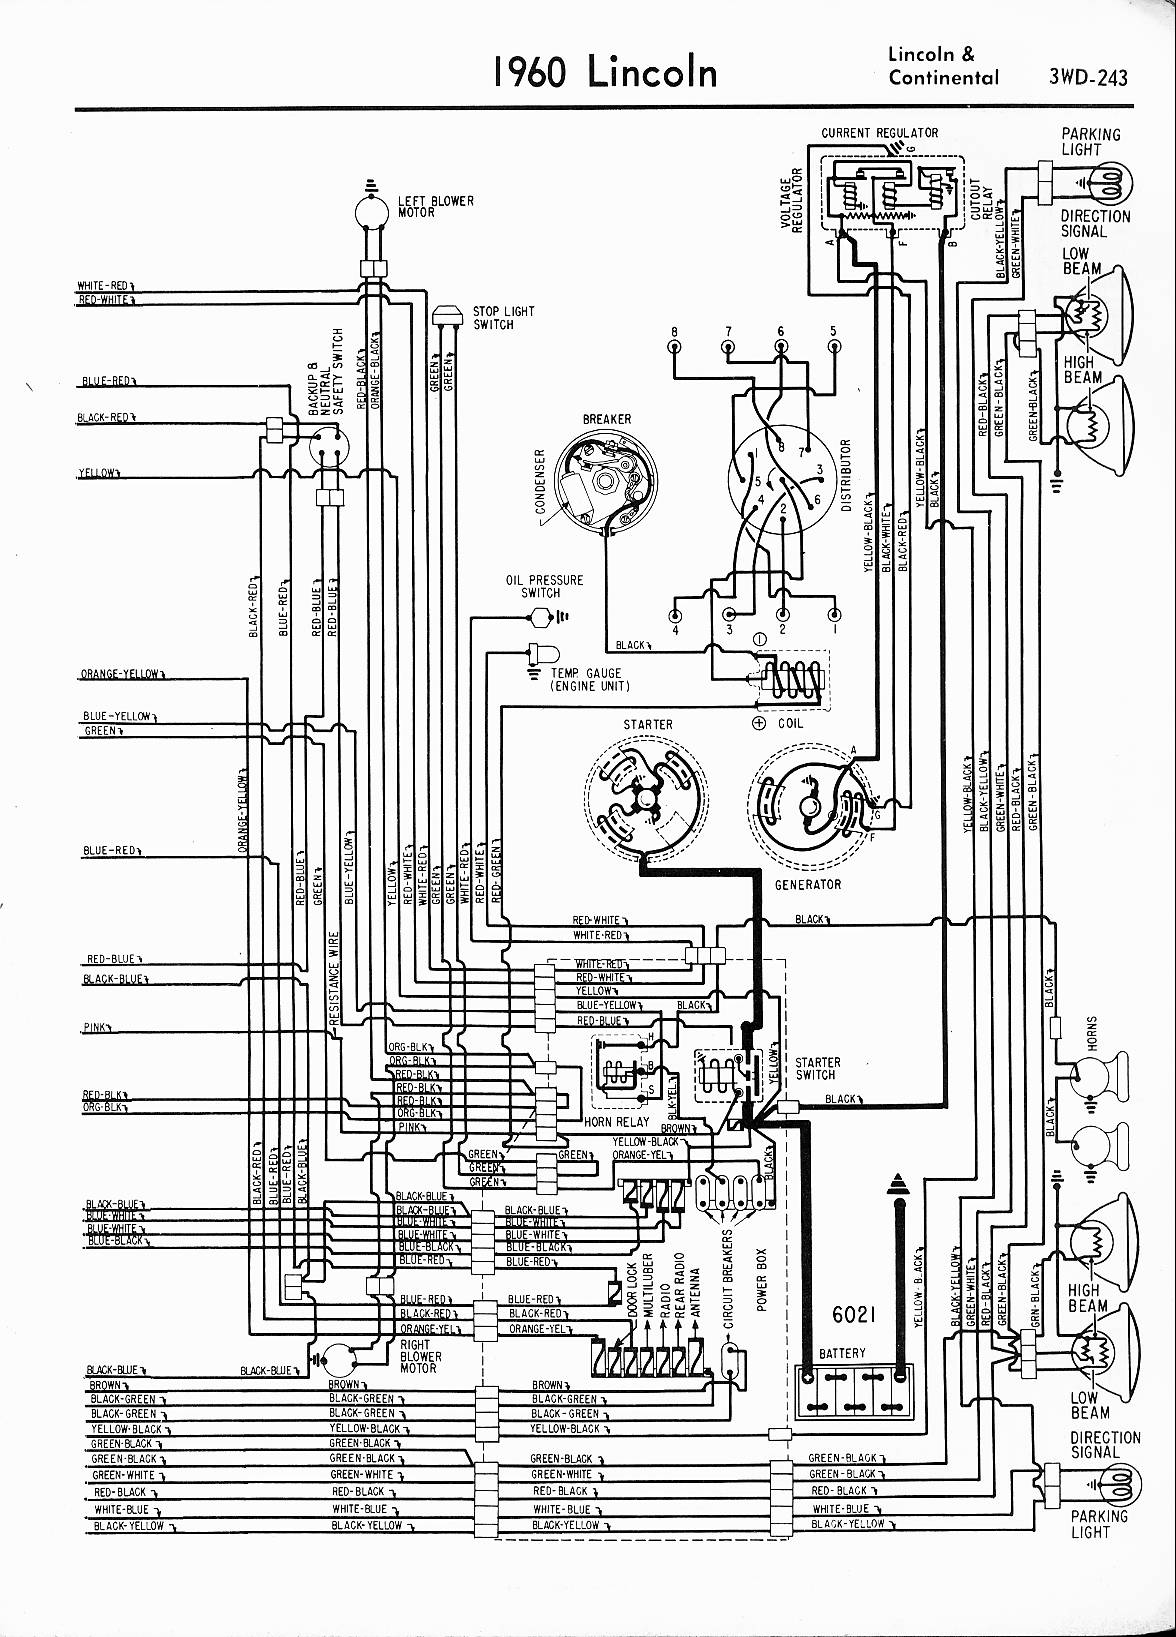 1960 lincoln wiring diagram data wiring diagrams u2022 rh naopak co 1998 Lincoln Continental Transmission Sensor 2000 Lincoln Continental Manual